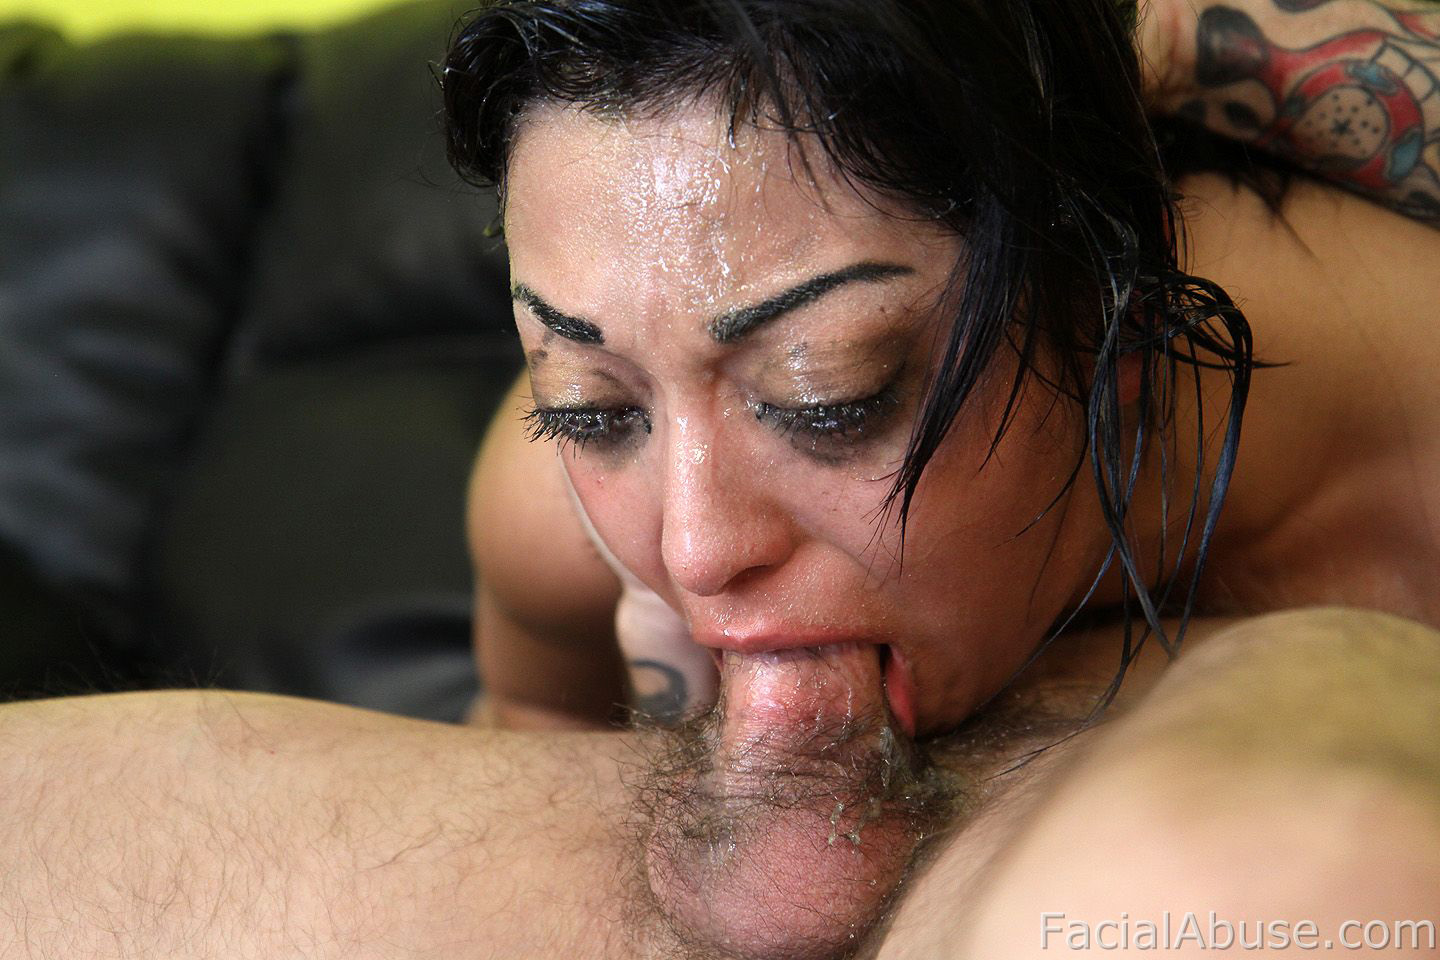 Facial abuse porn